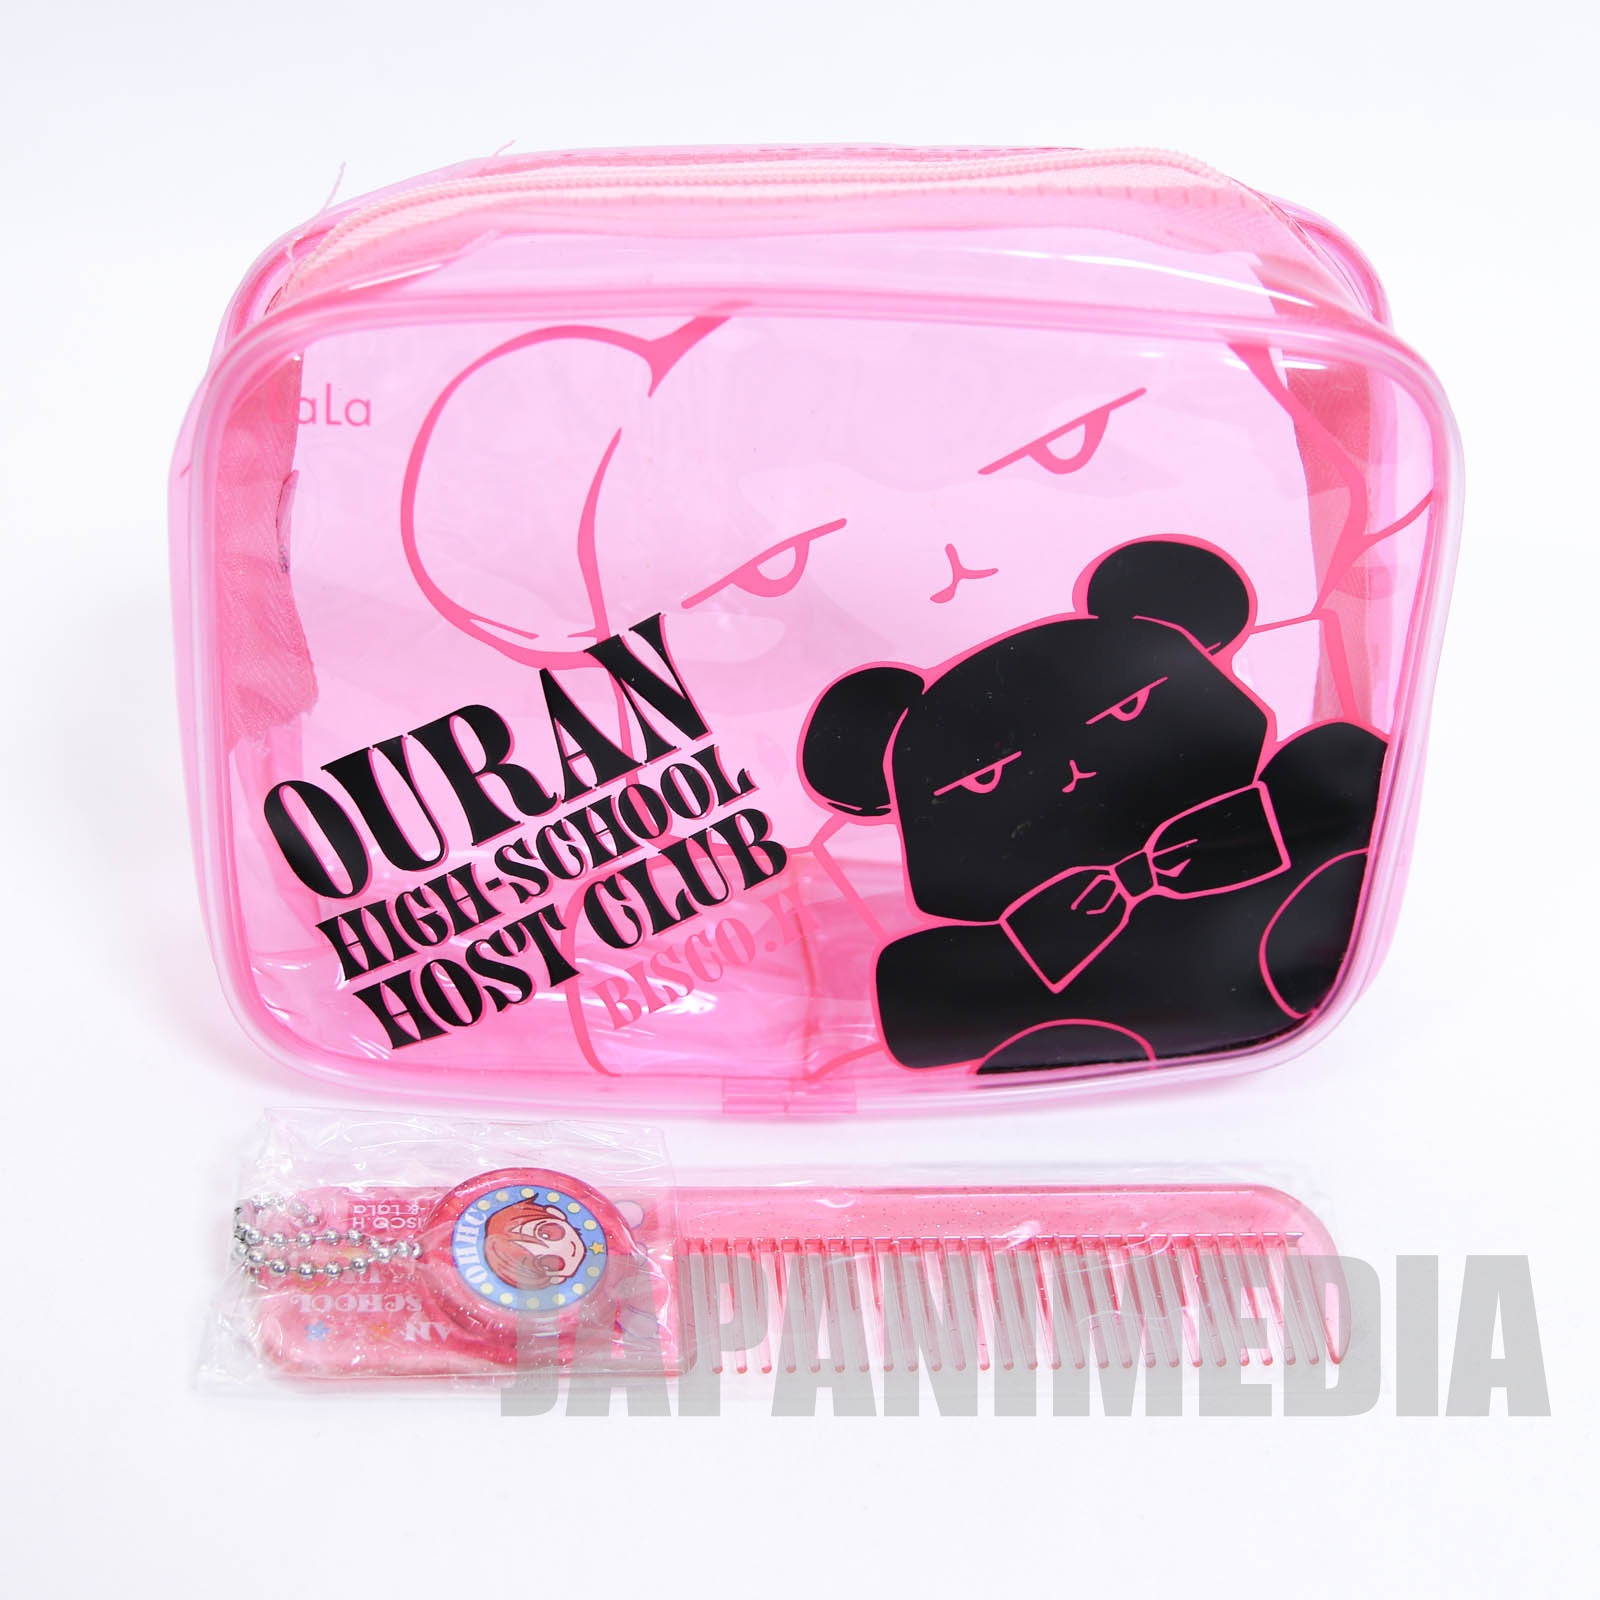 Ouran High School Host Club Kuma-chan Nylon Pouch bag & Usa-chan Comb Set JAPAN MANGA